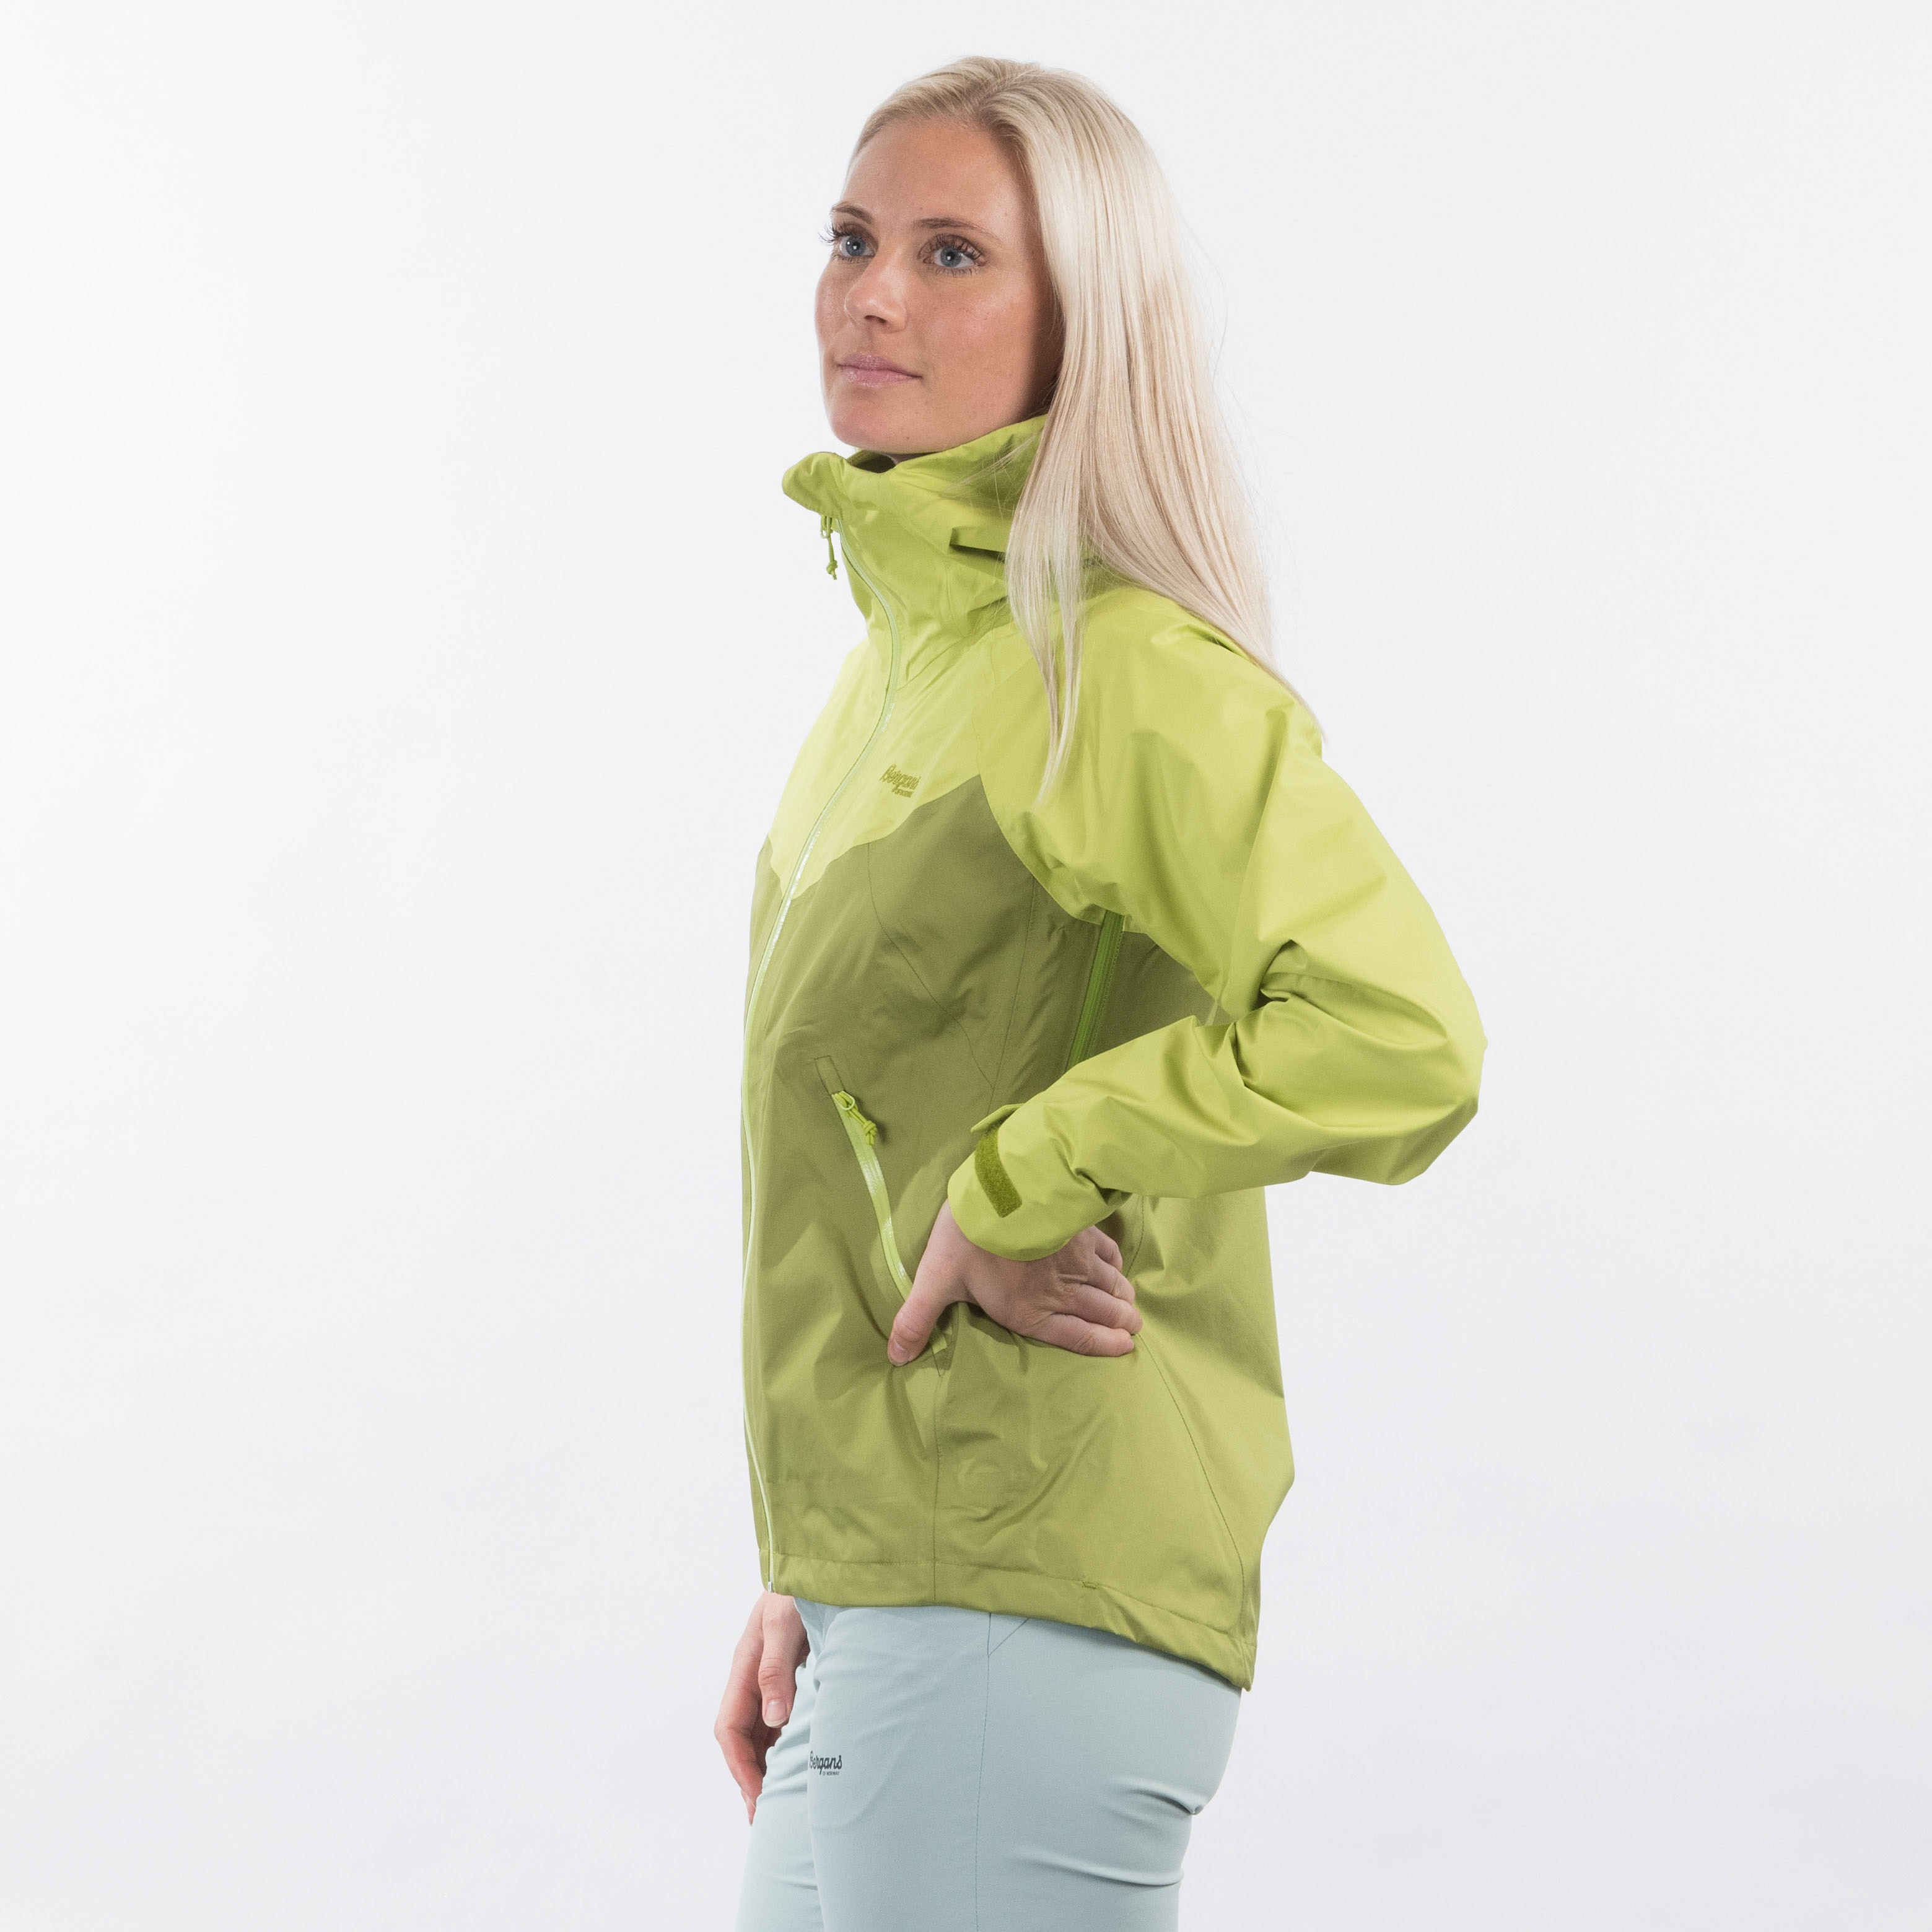 Letto V2 3L W Jacket